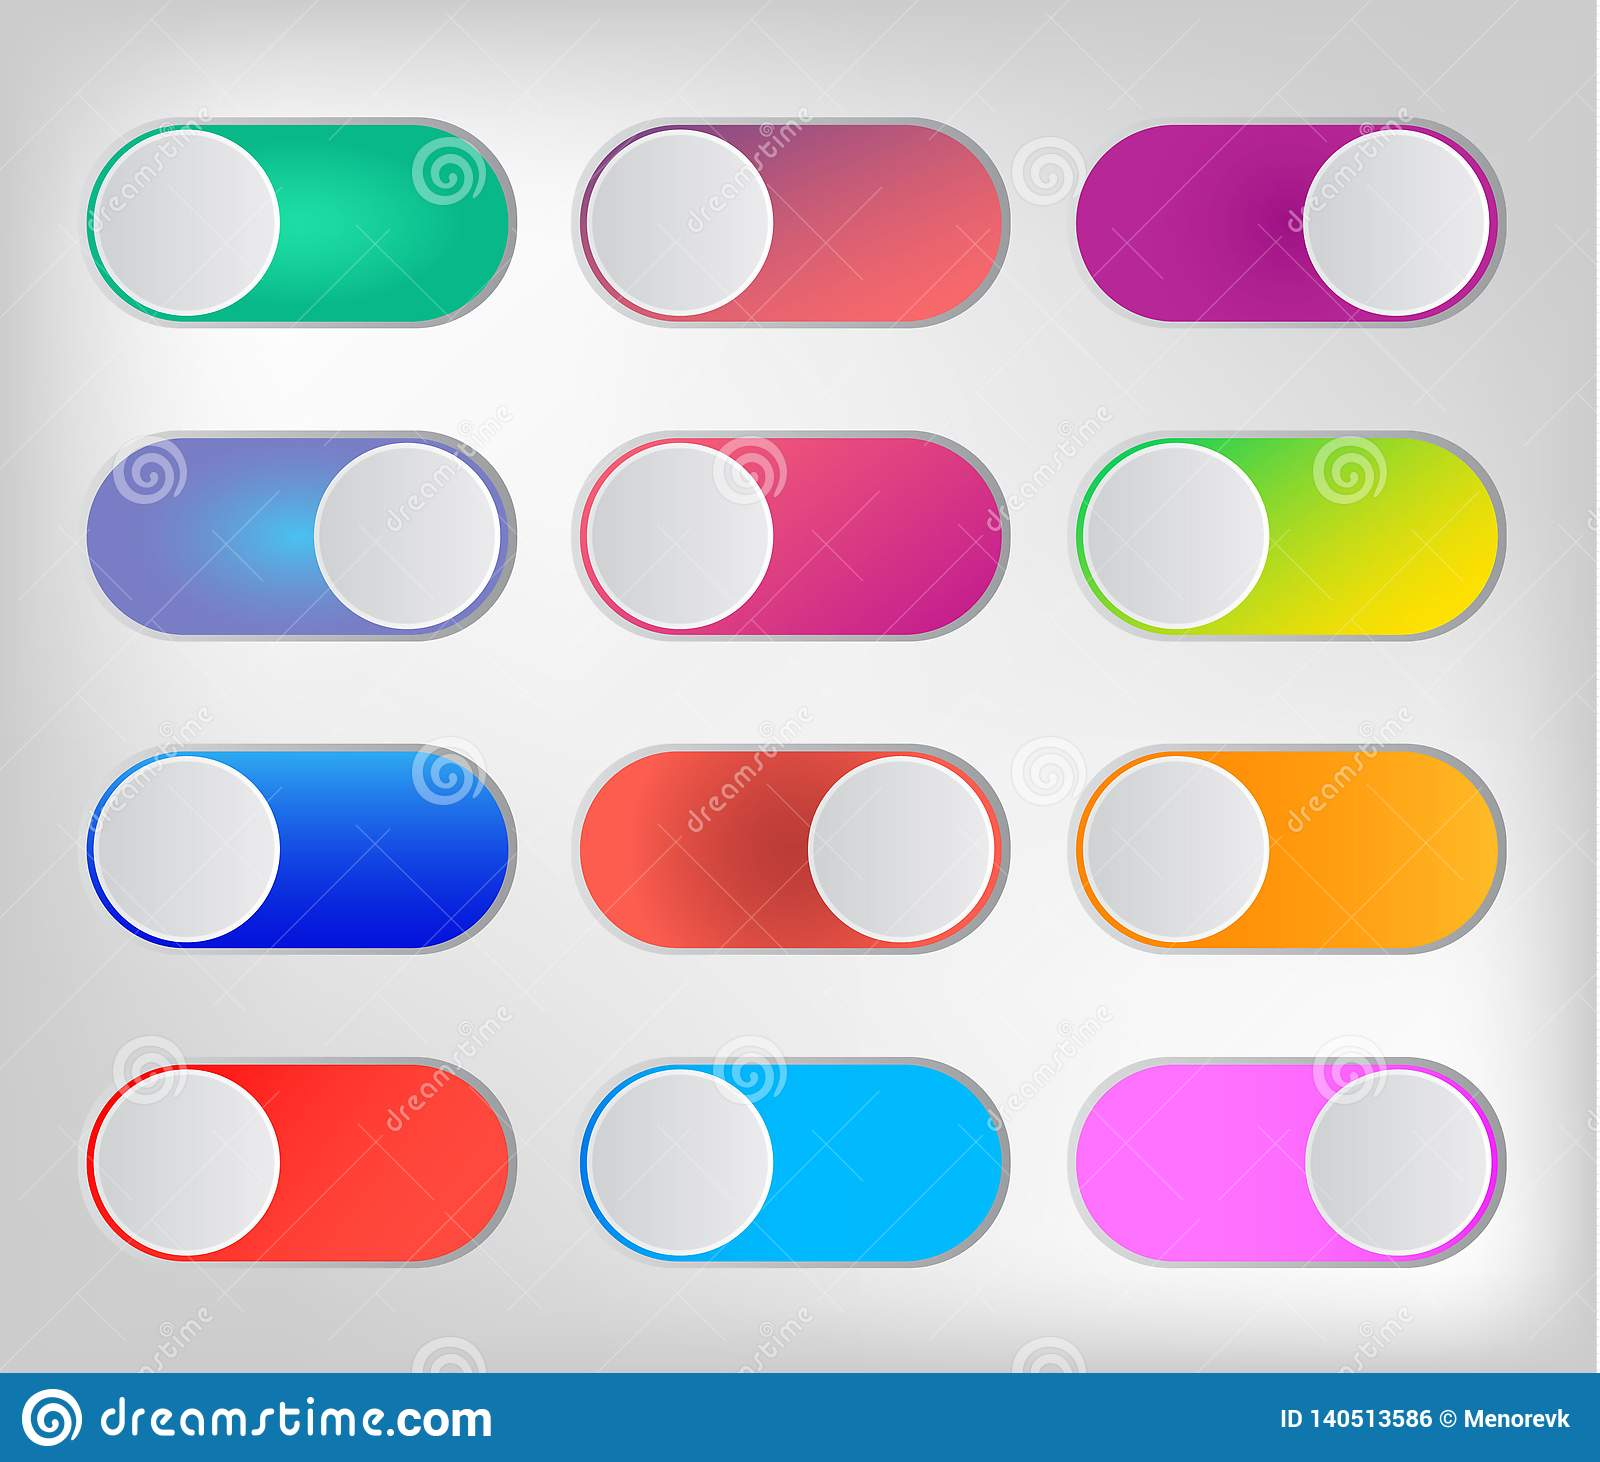 Flat icon colorful switchers onoff isolated on white background.